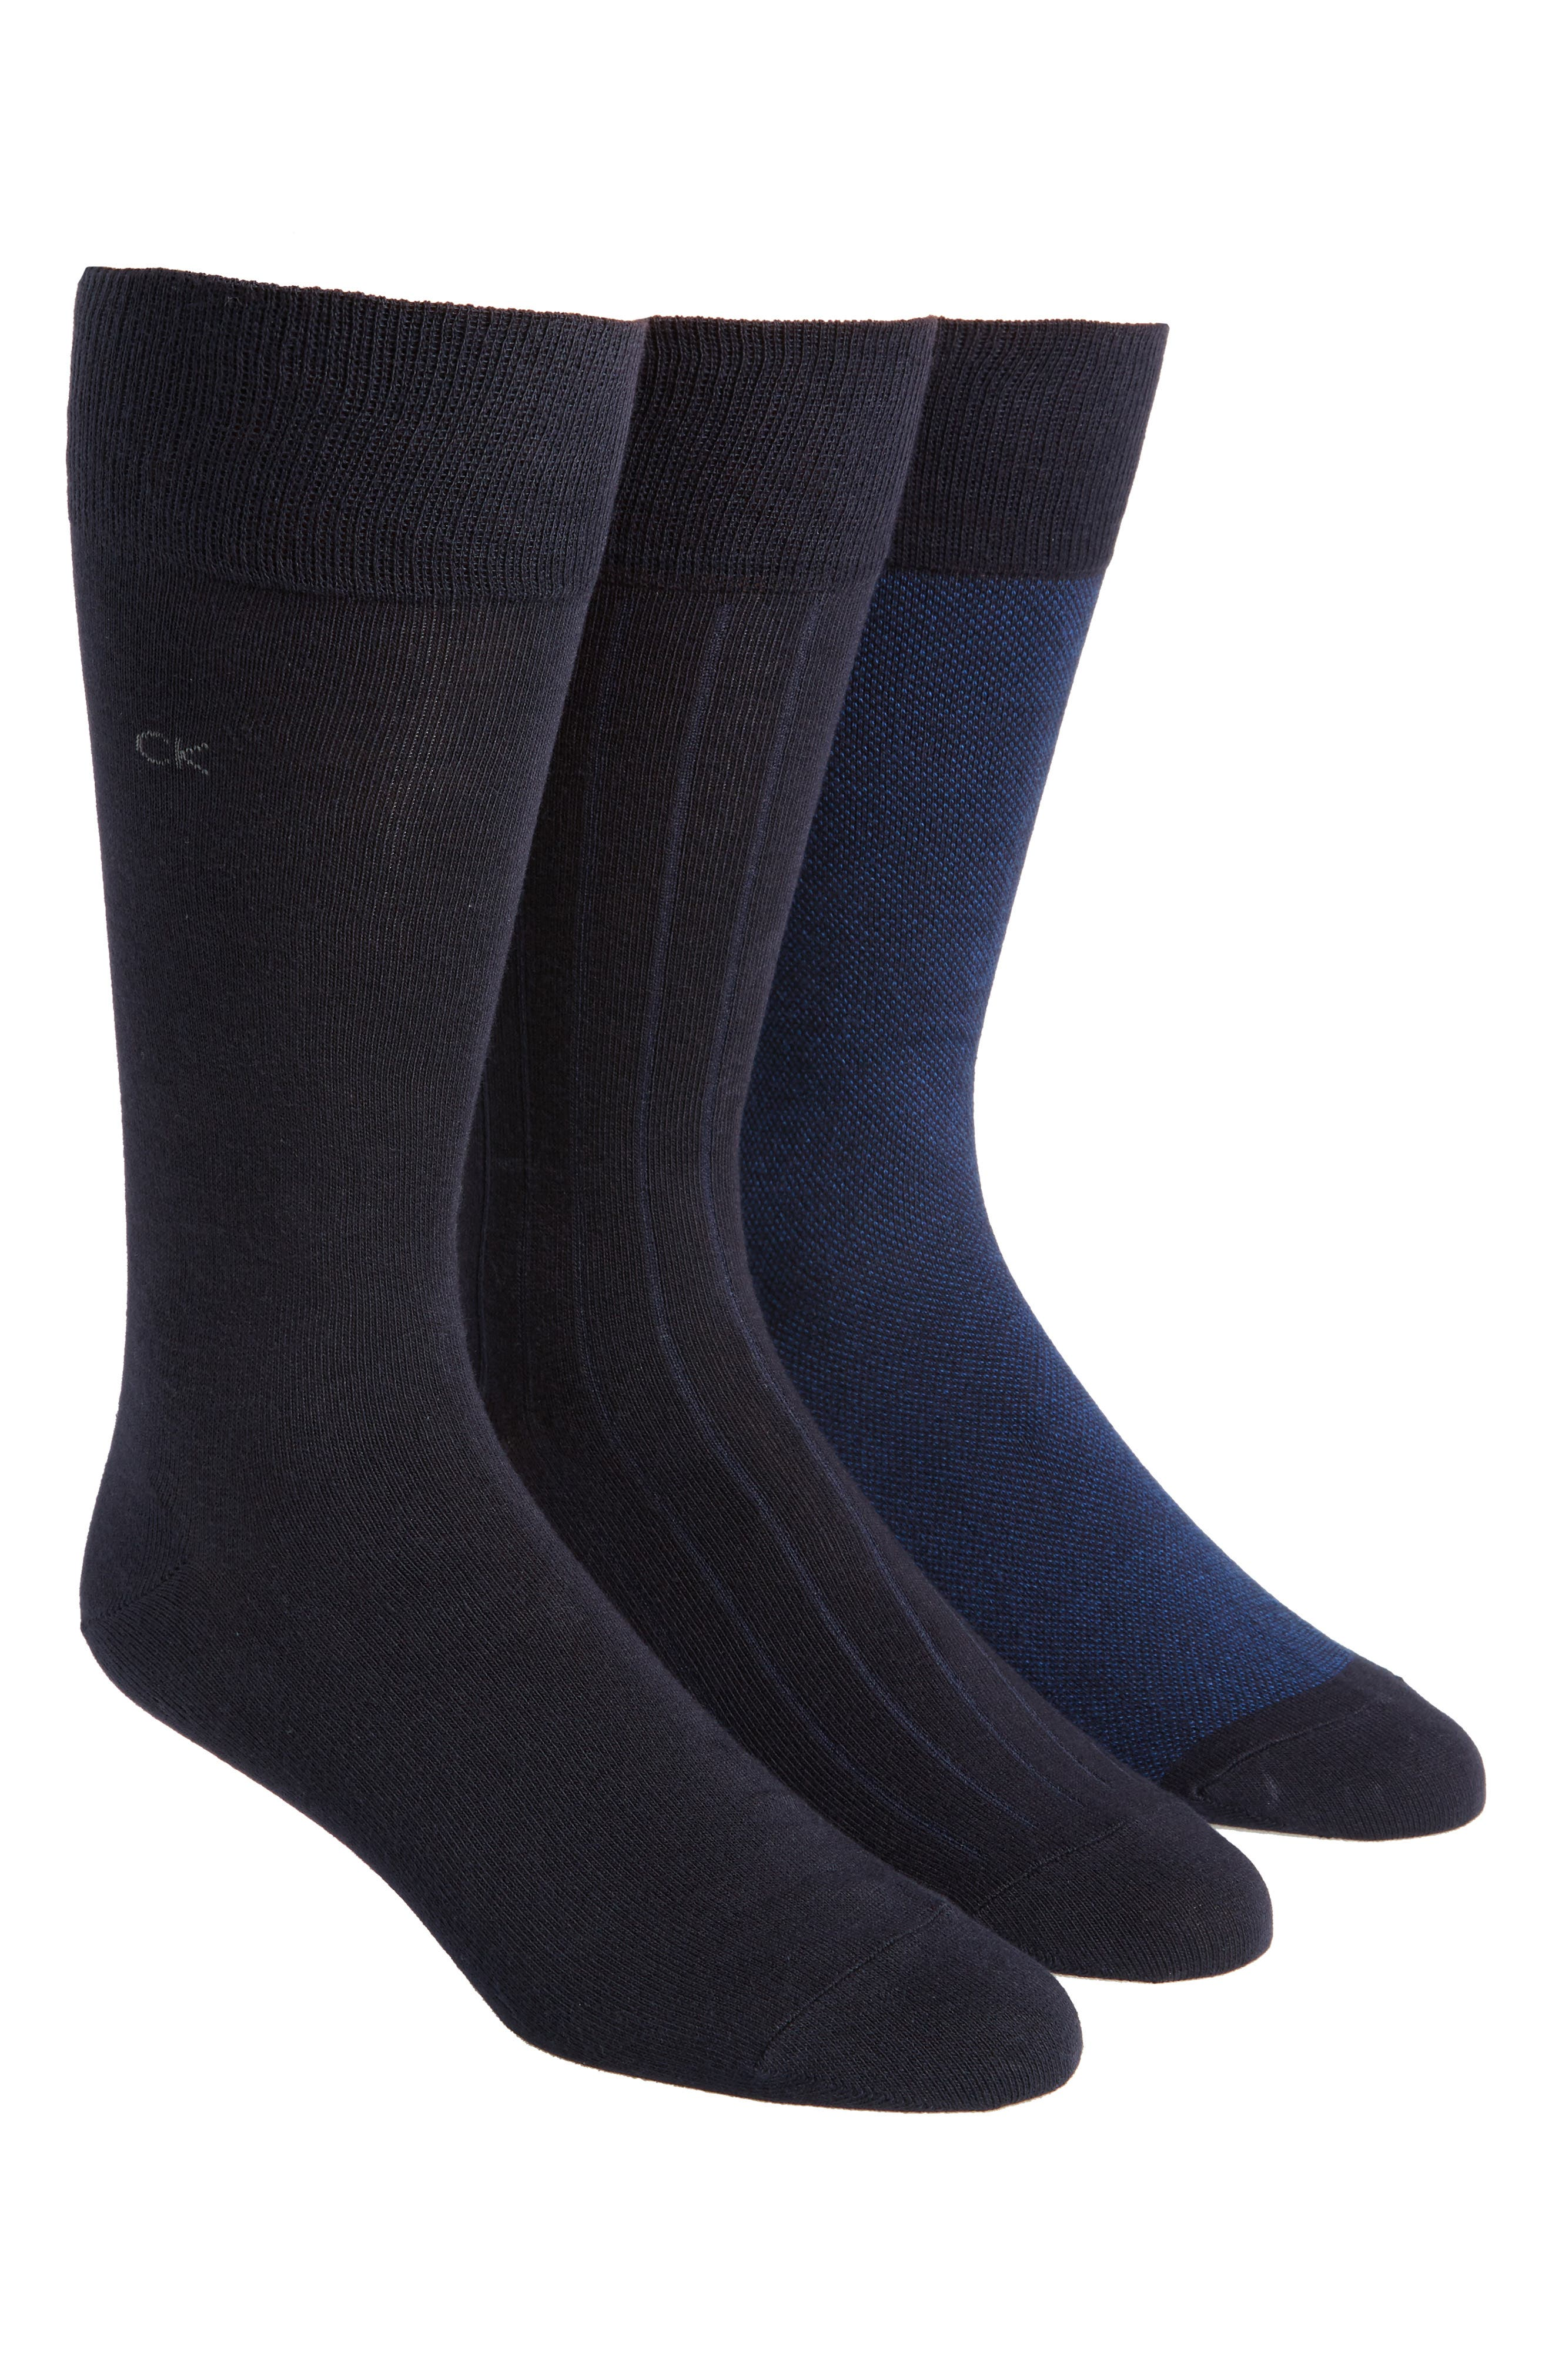 3-Pack Crew Socks,                         Main,                         color, Navy